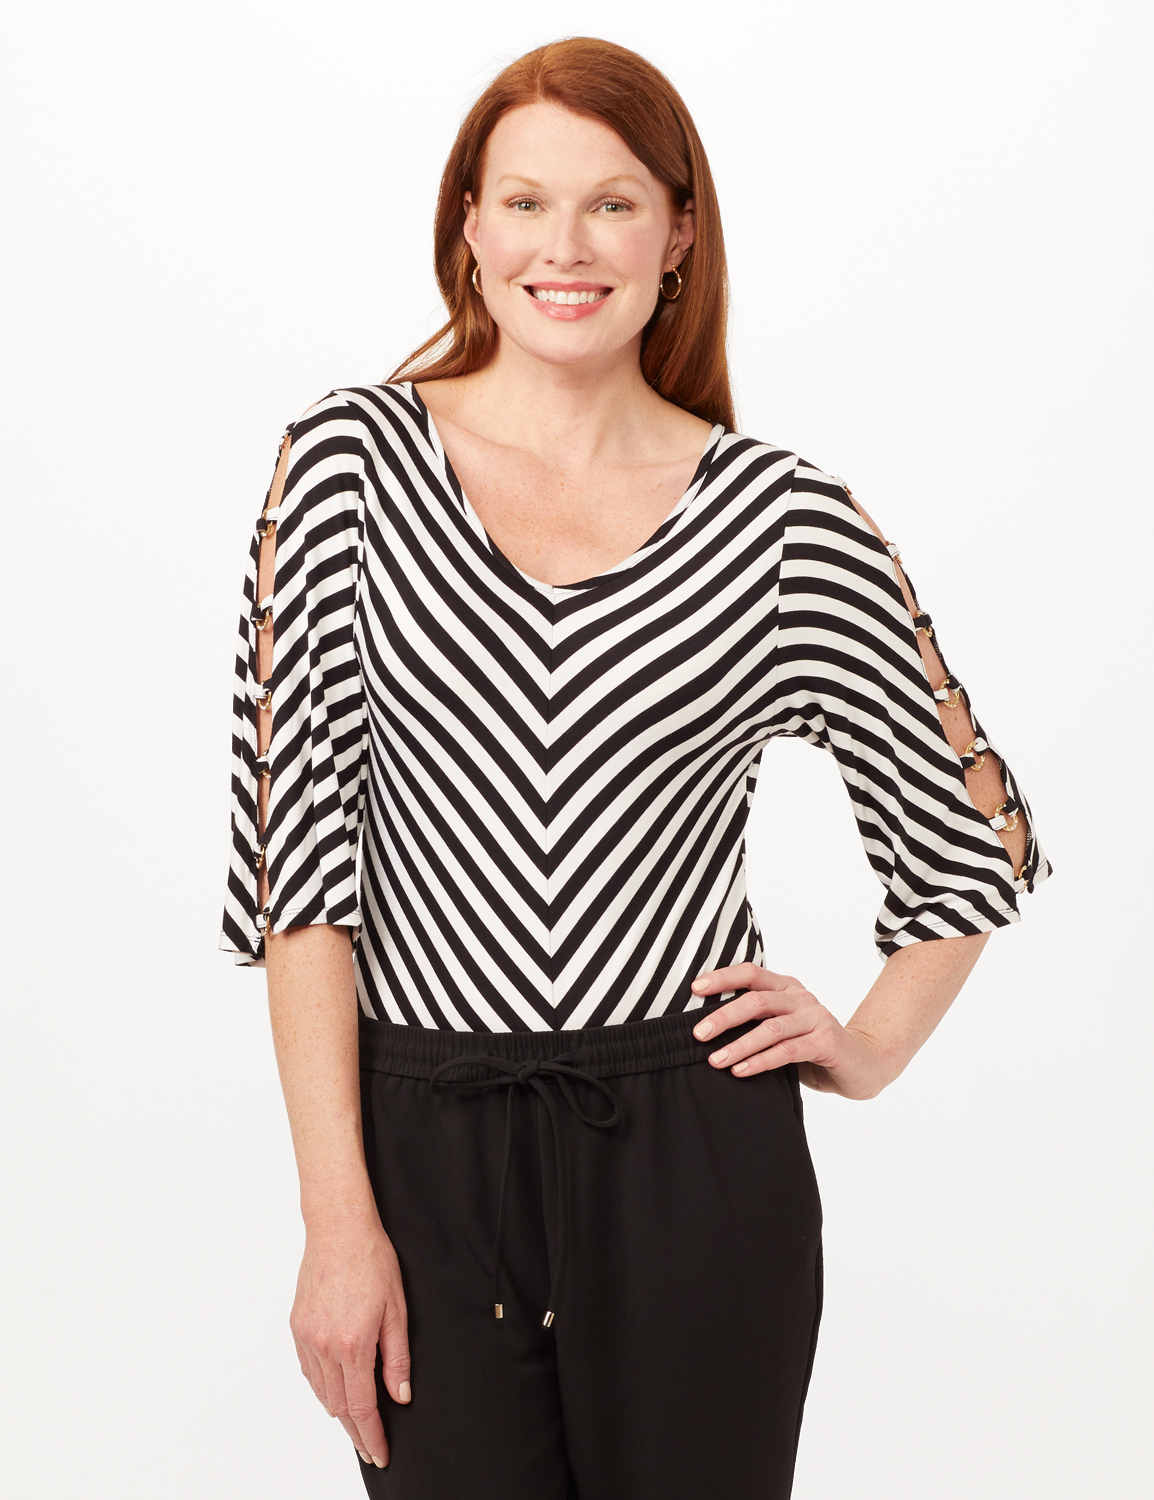 Lattice Sleeve Mitered Stripe Knit Top -Black/White - Front